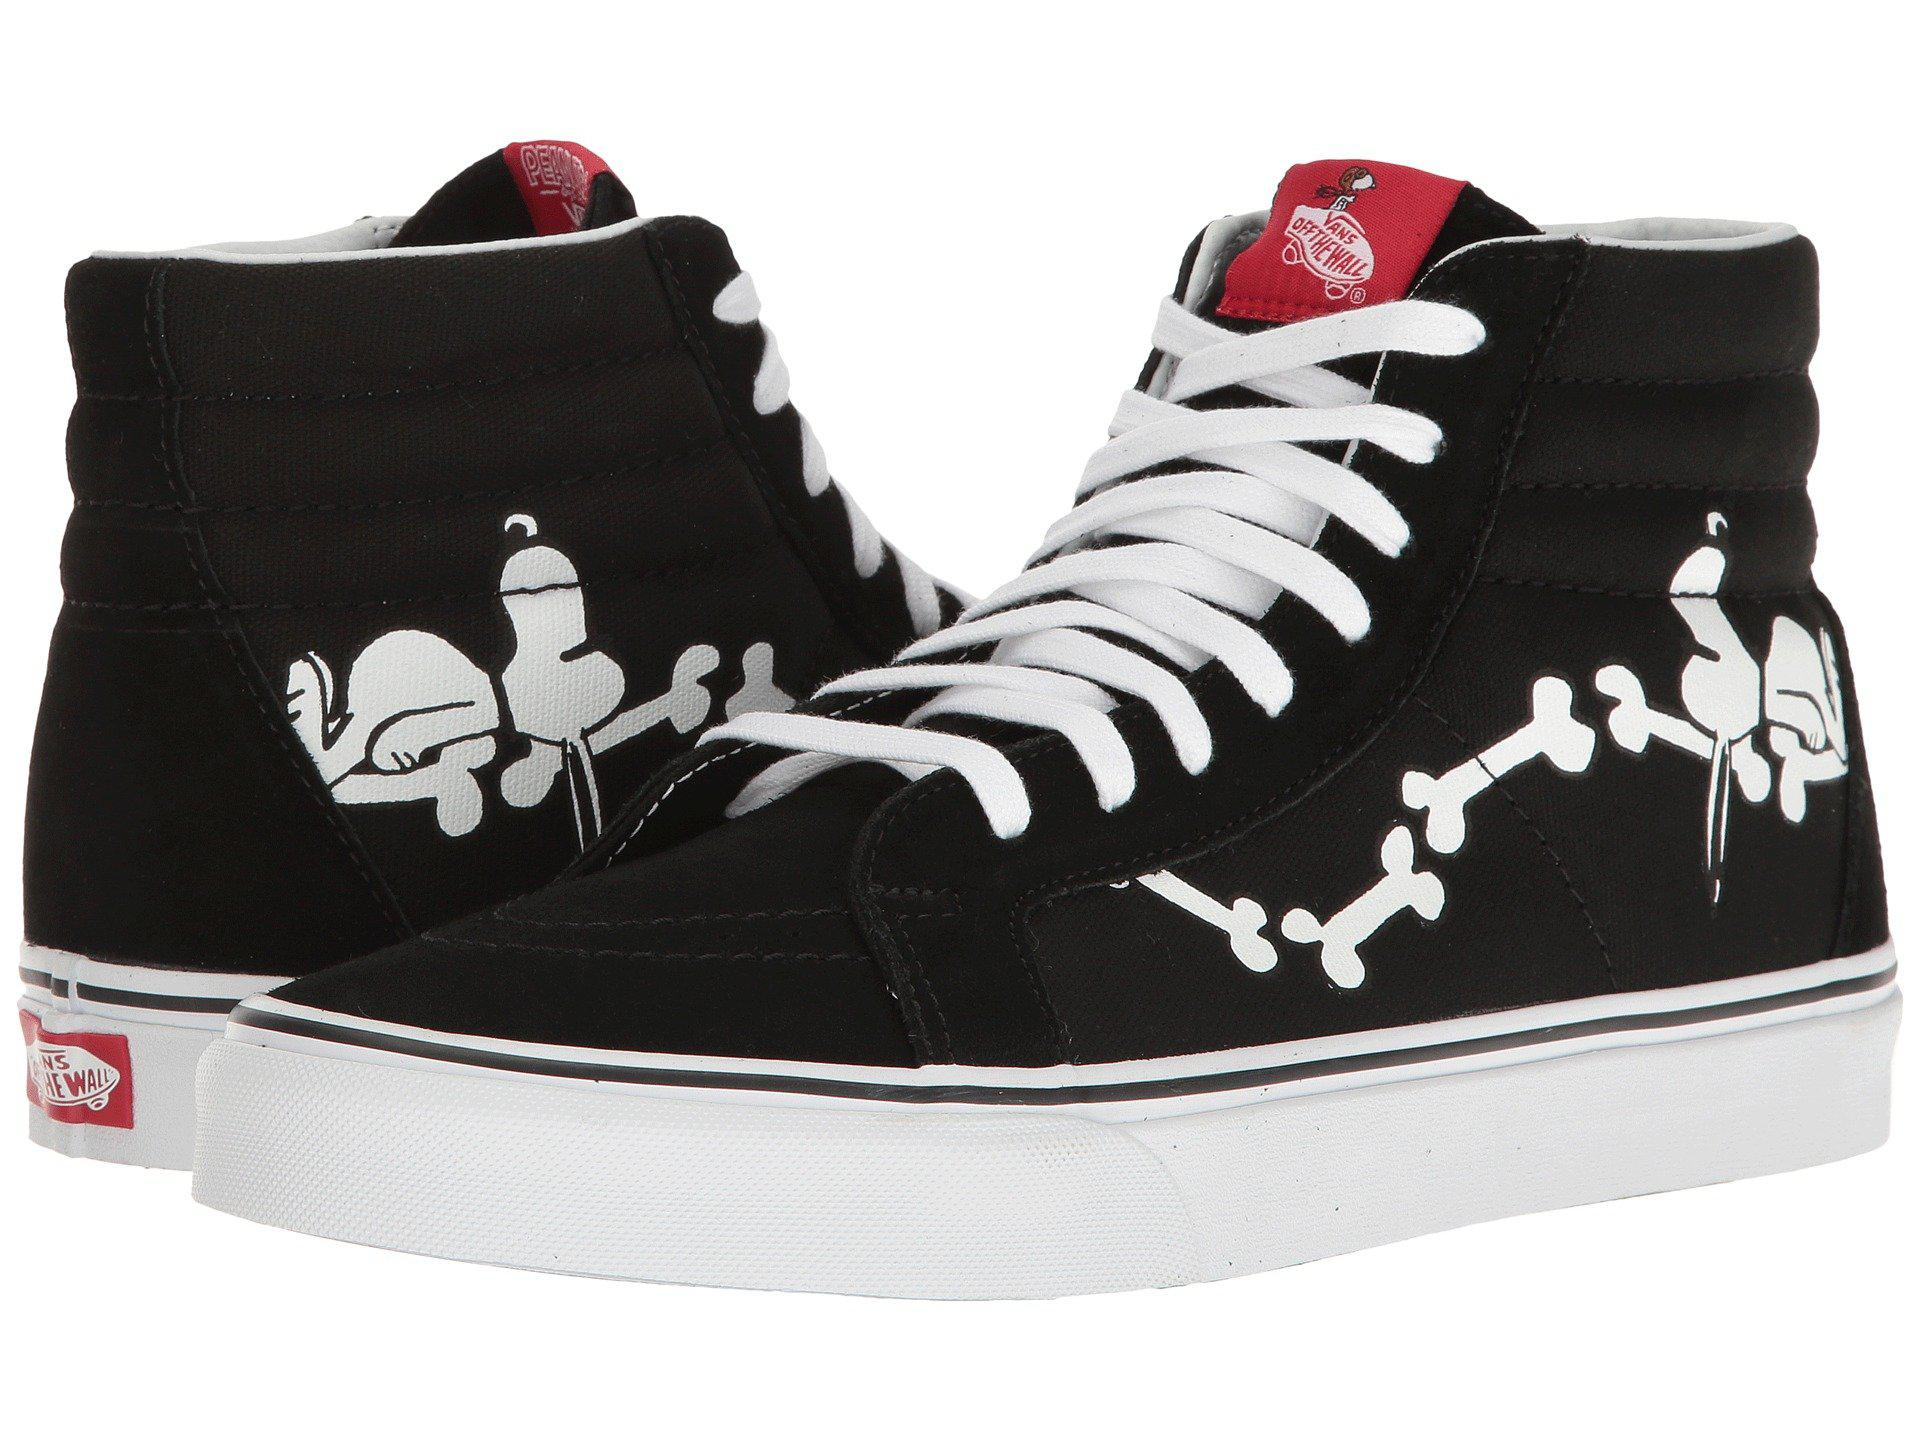 849bb85df8 Lyst - Vans Sk8-hi Reissue X Peanuts Collaboration in Black